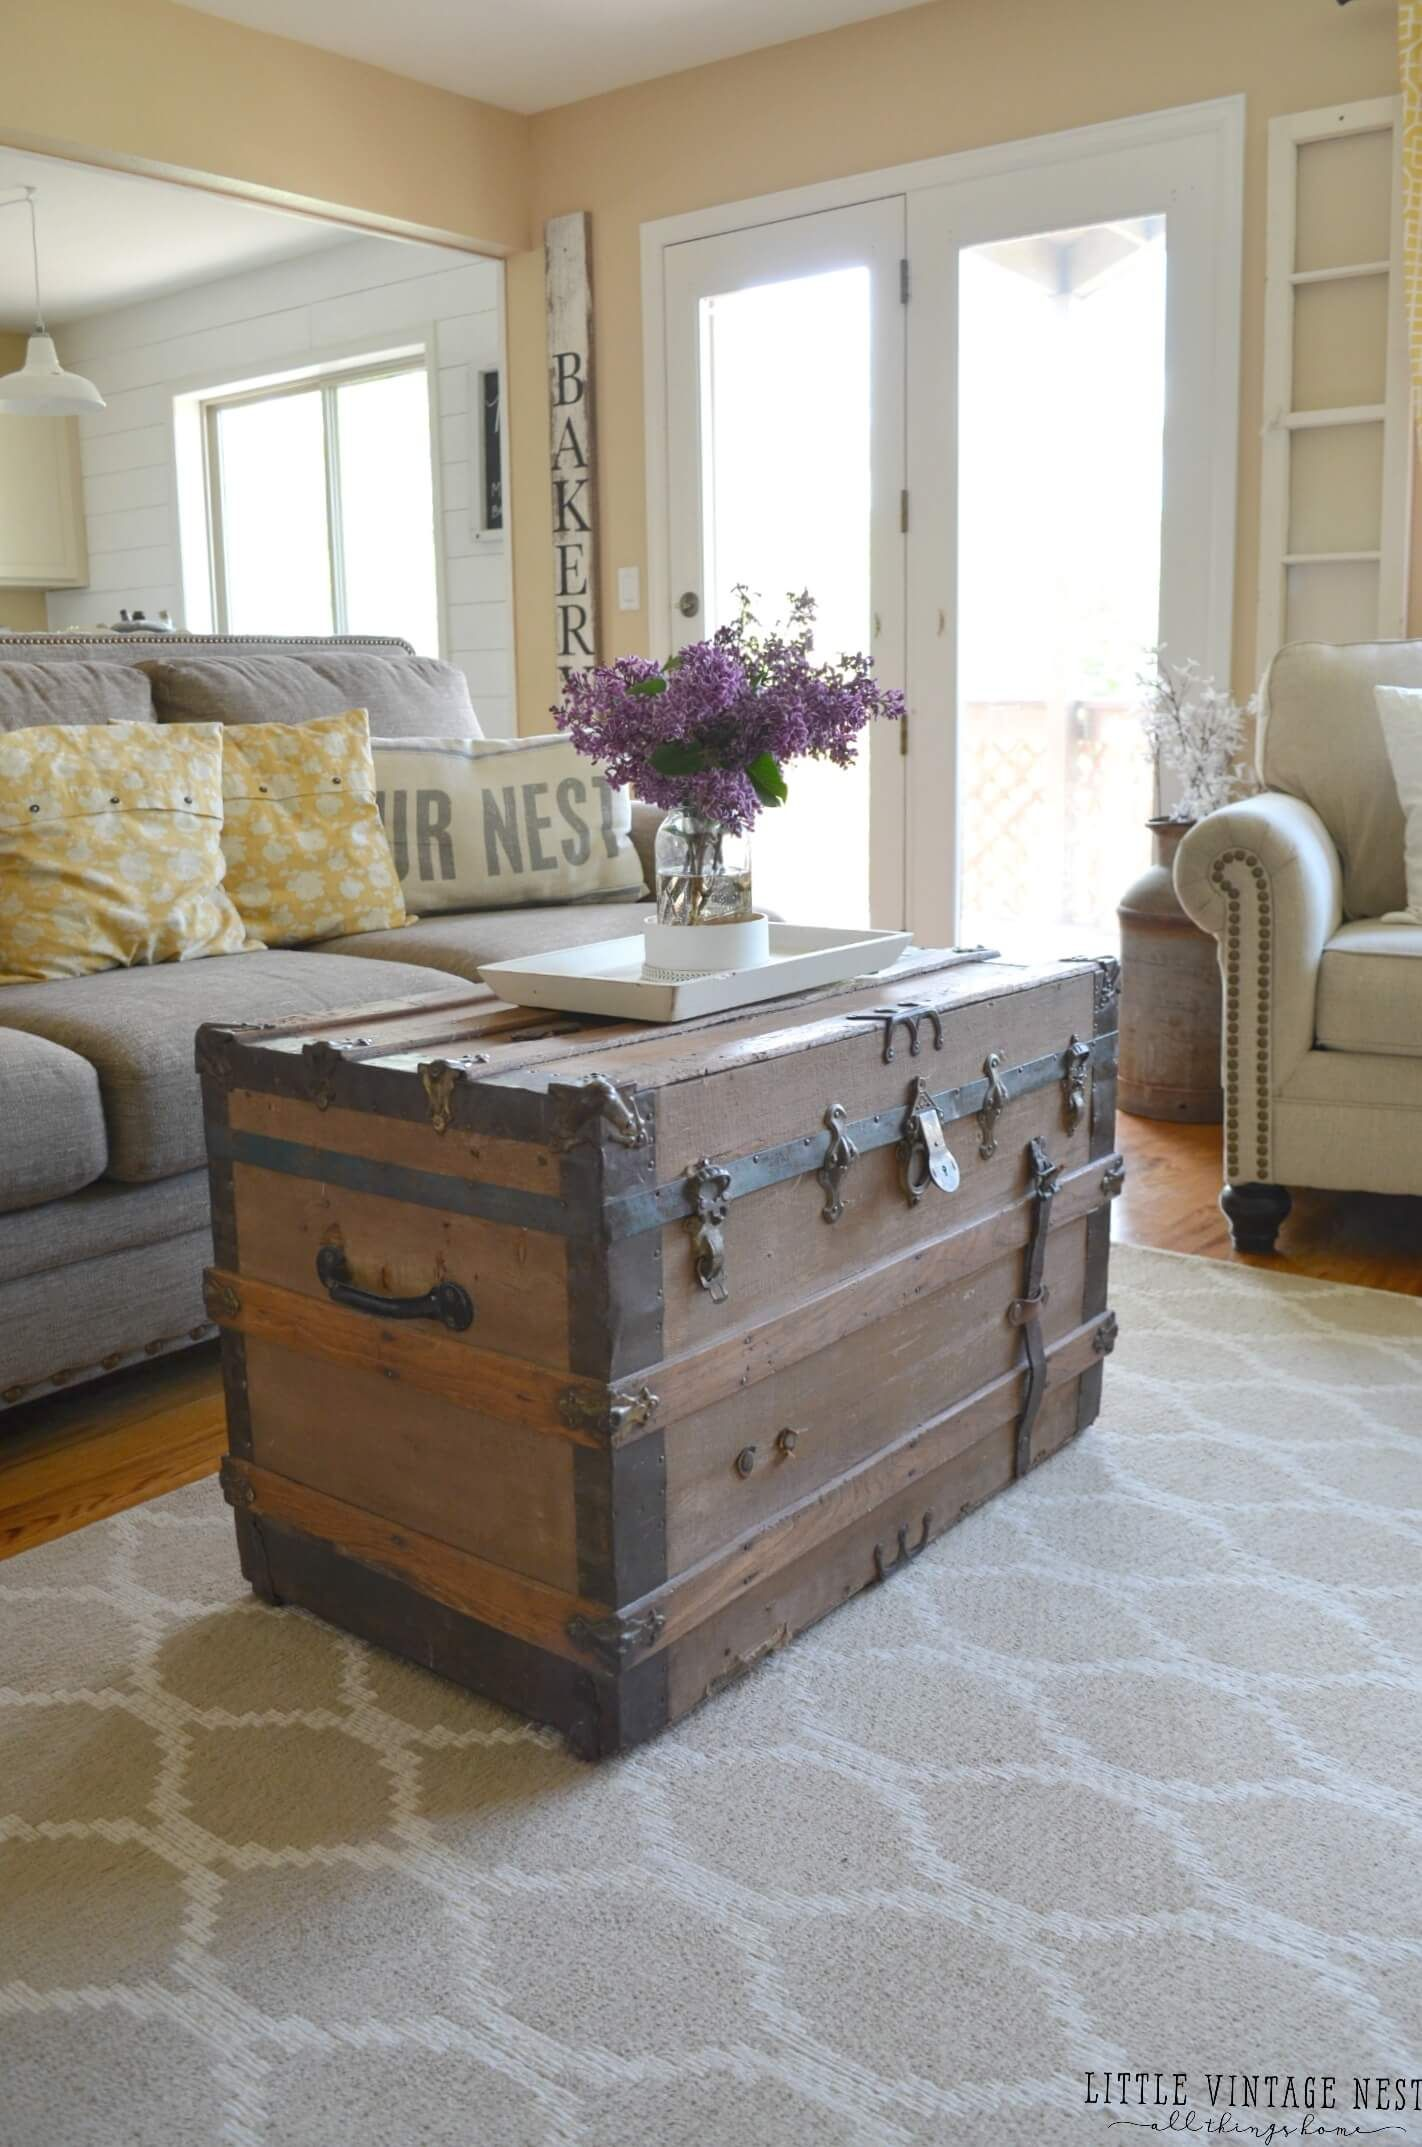 living room trunks. 35 Rustic Farmhouse Living Room Design and Decor Ideas for Your Home